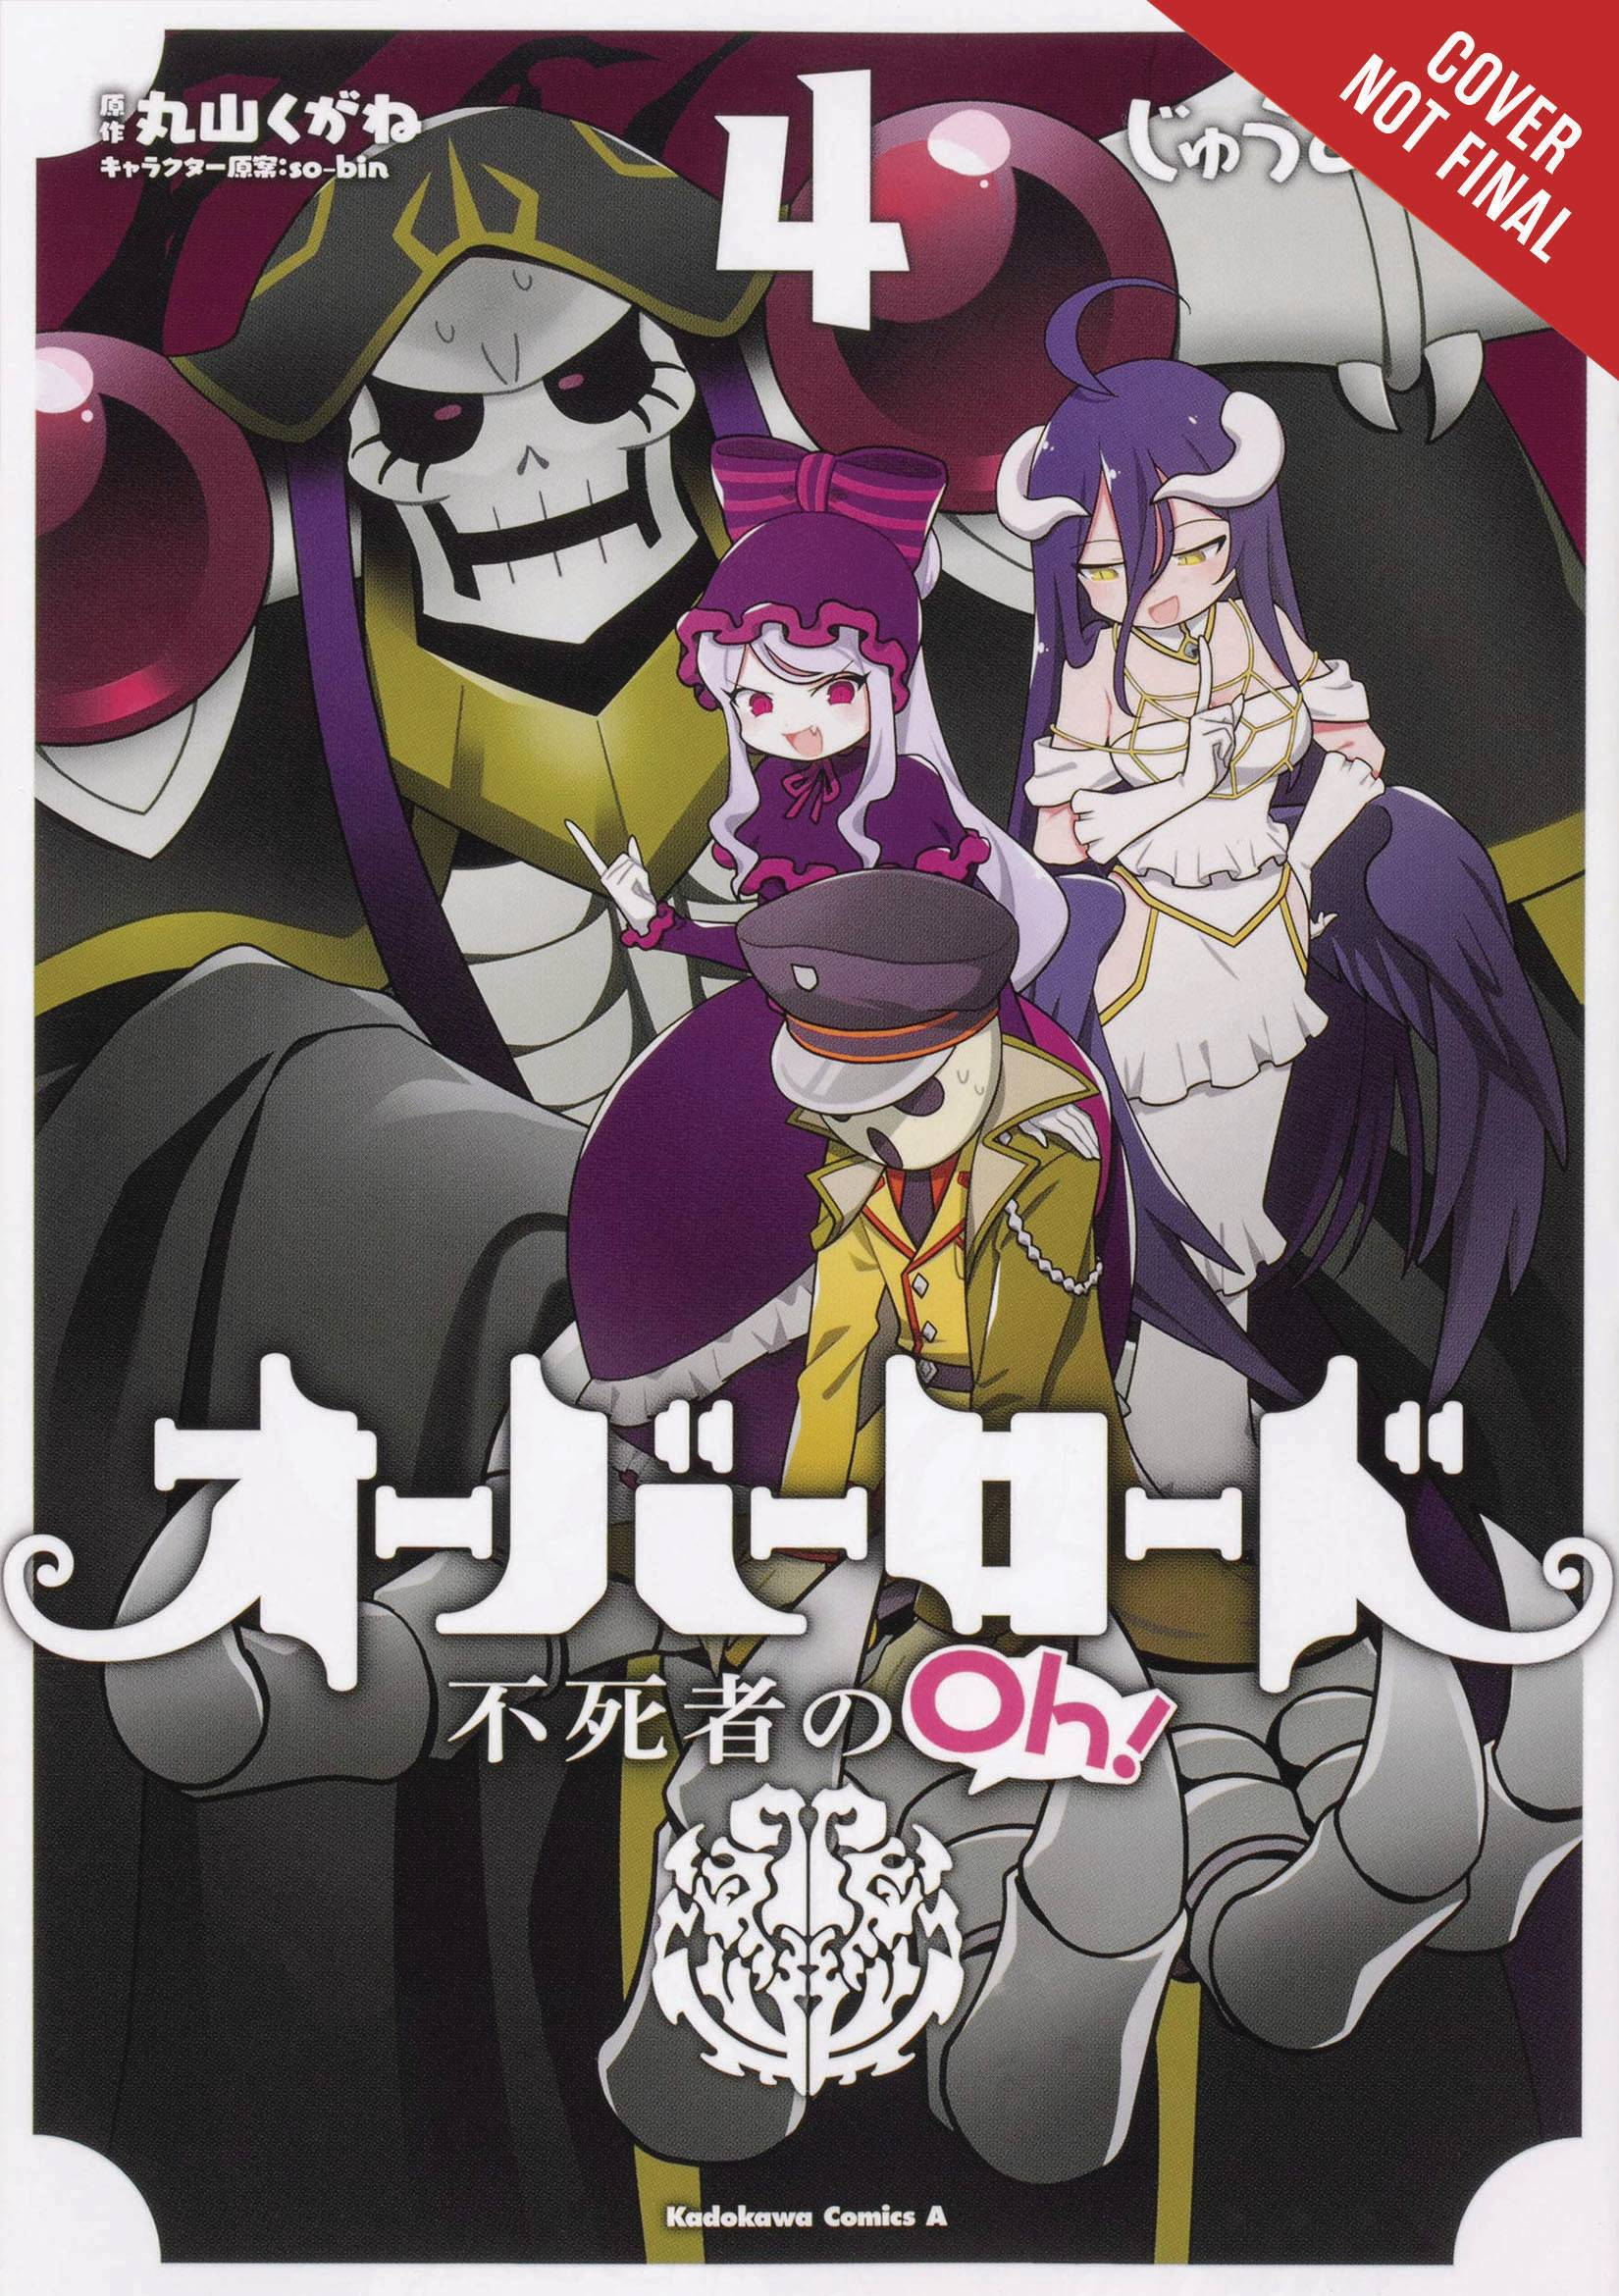 OVERLORD UNDEAD KING OH GN 04